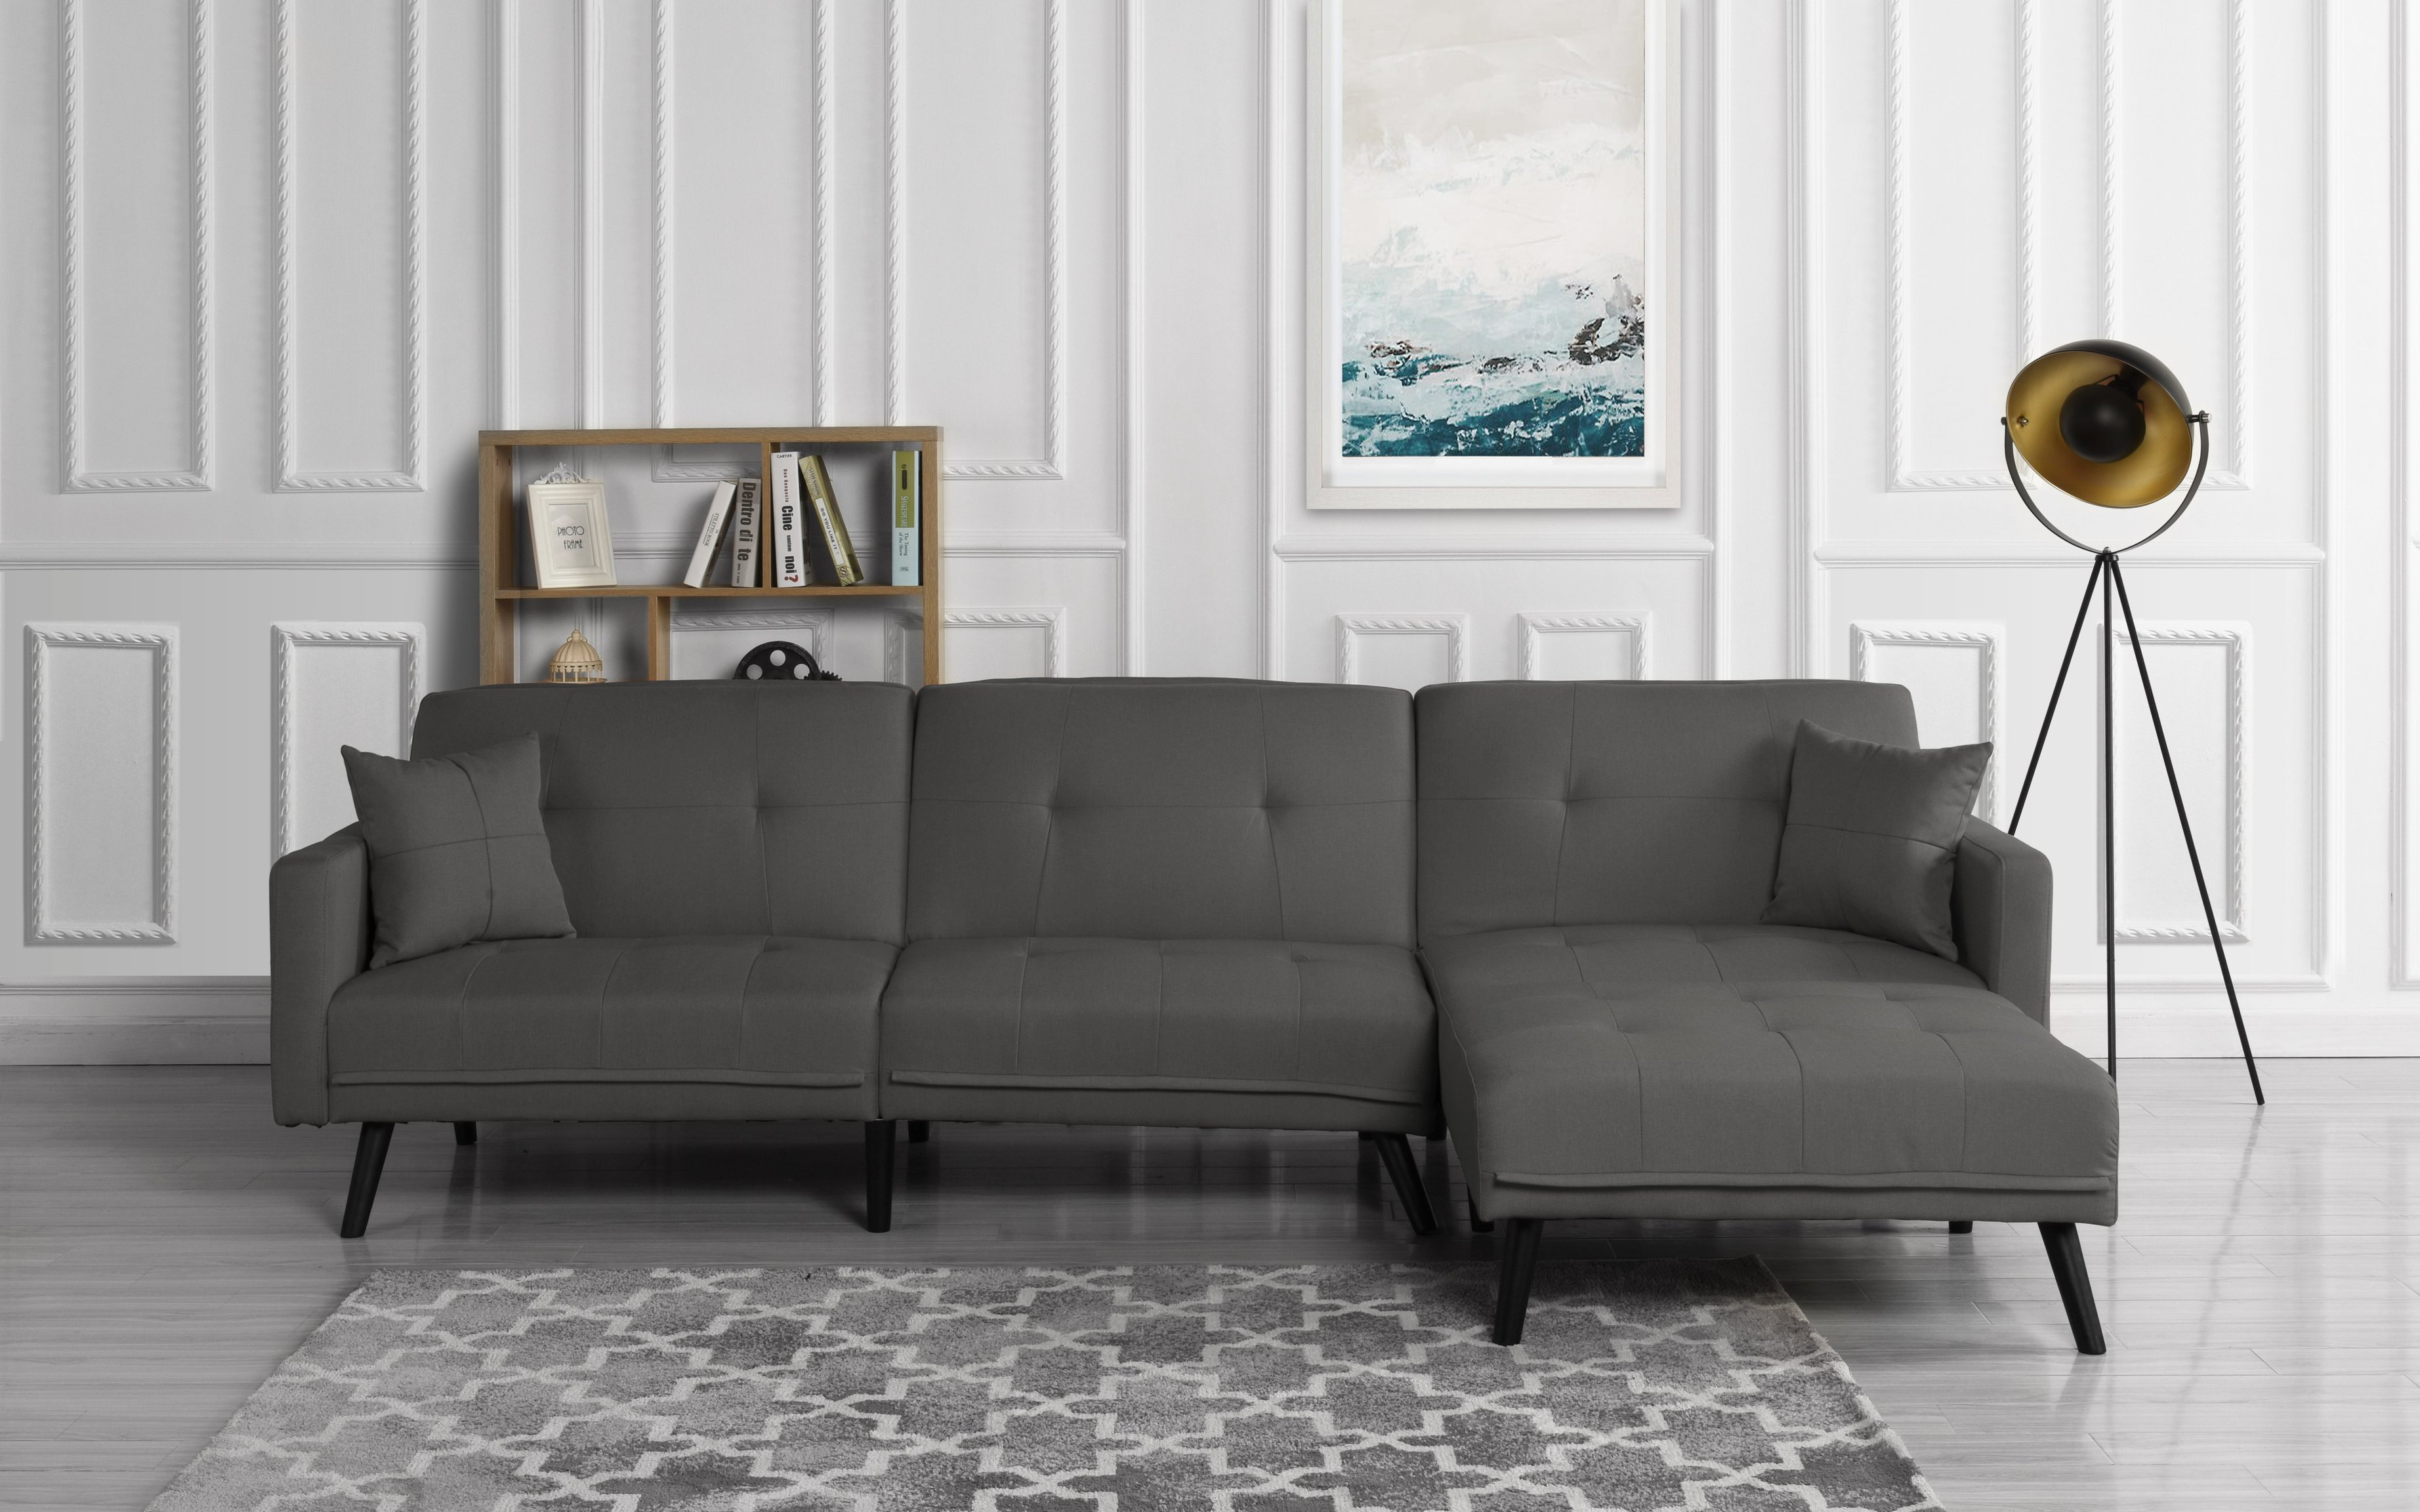 Excellent Details About Mid Century Modern Reversible Sofa Sleeper Futon Sofa L Shape Couch Dark Grey Onthecornerstone Fun Painted Chair Ideas Images Onthecornerstoneorg